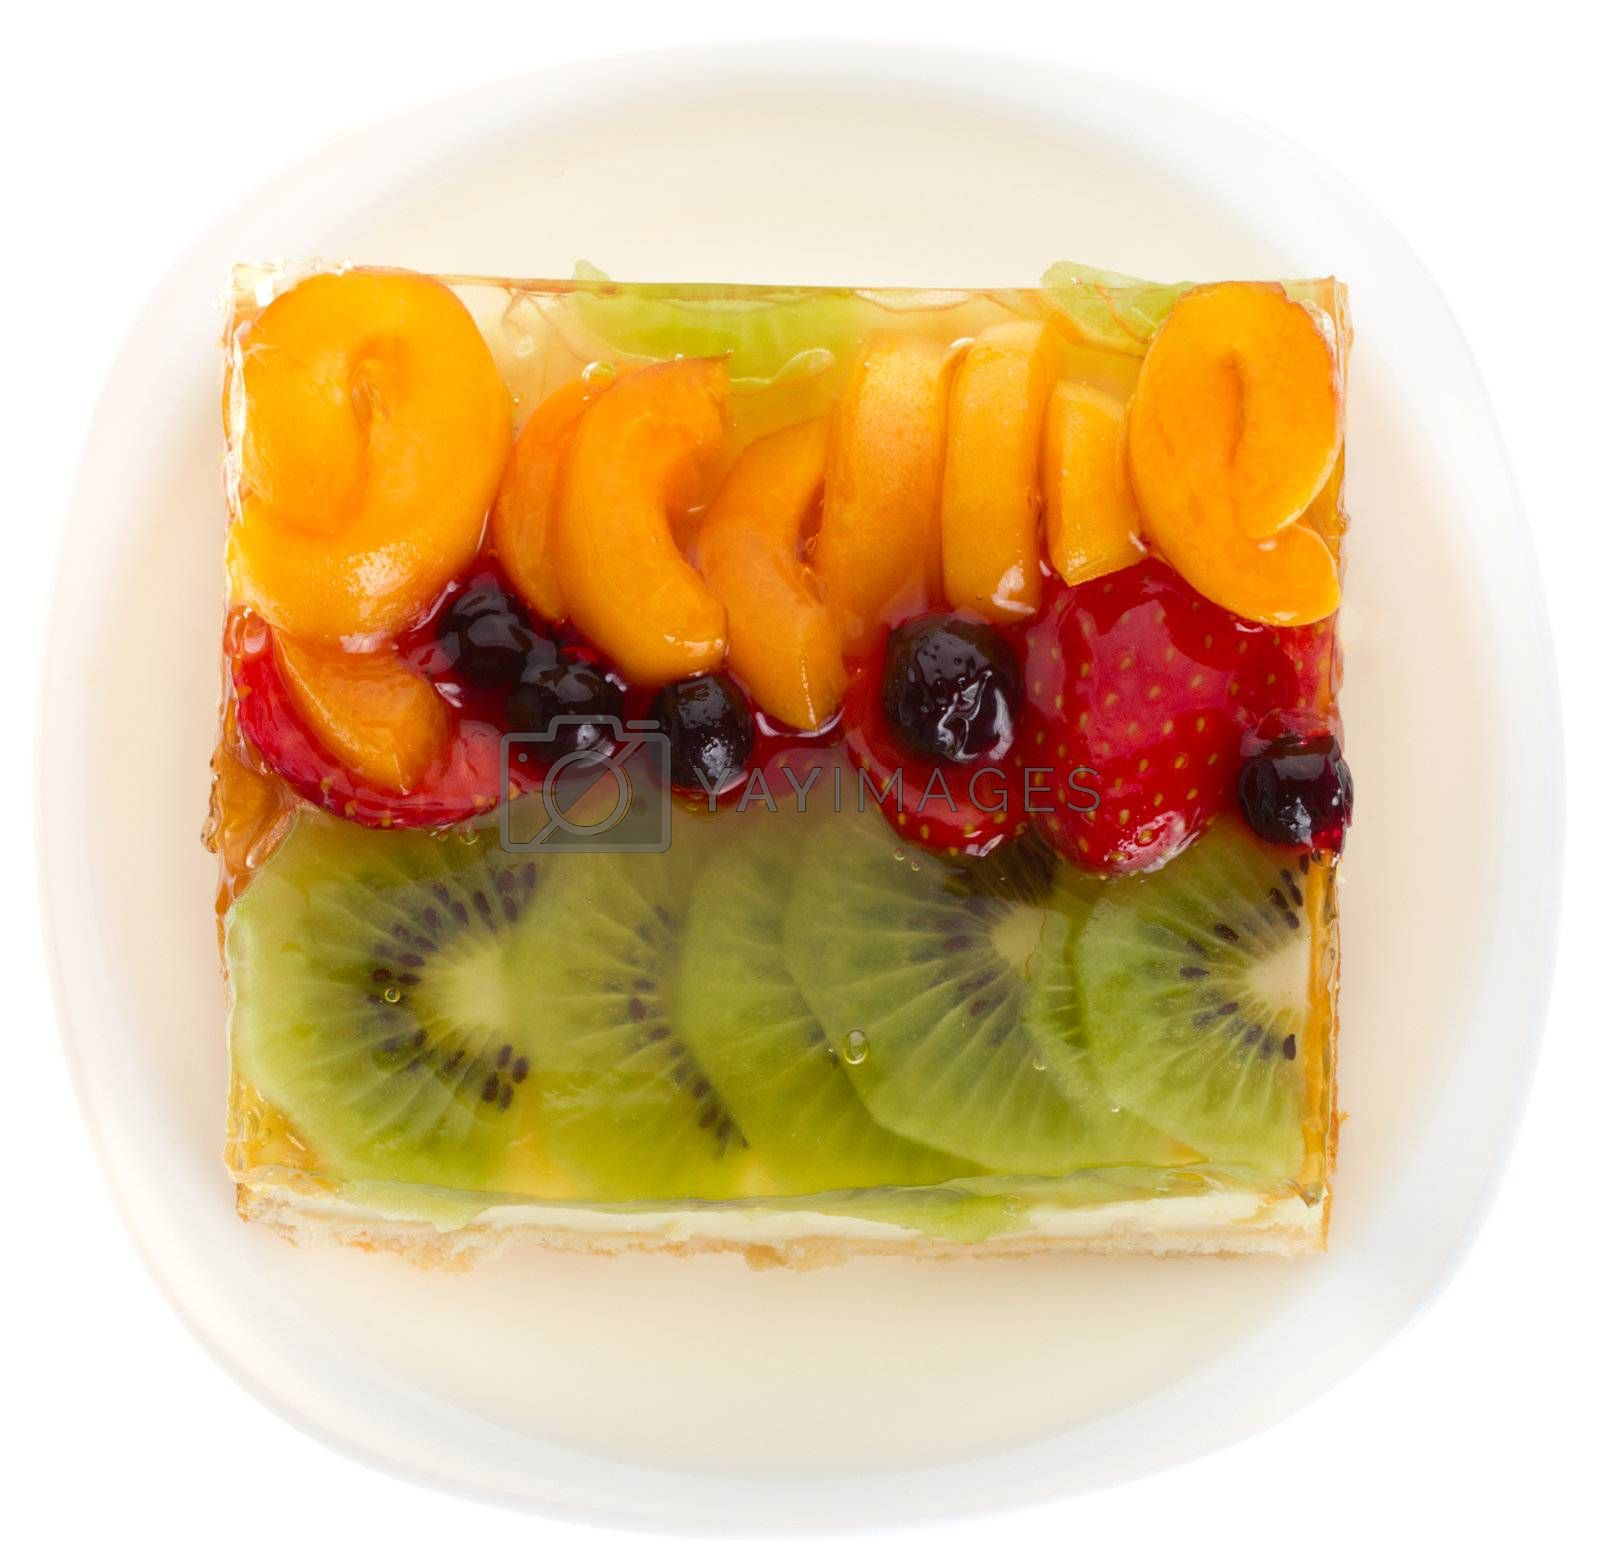 close-up curd cake with jellied fruits and berries, isolated on white